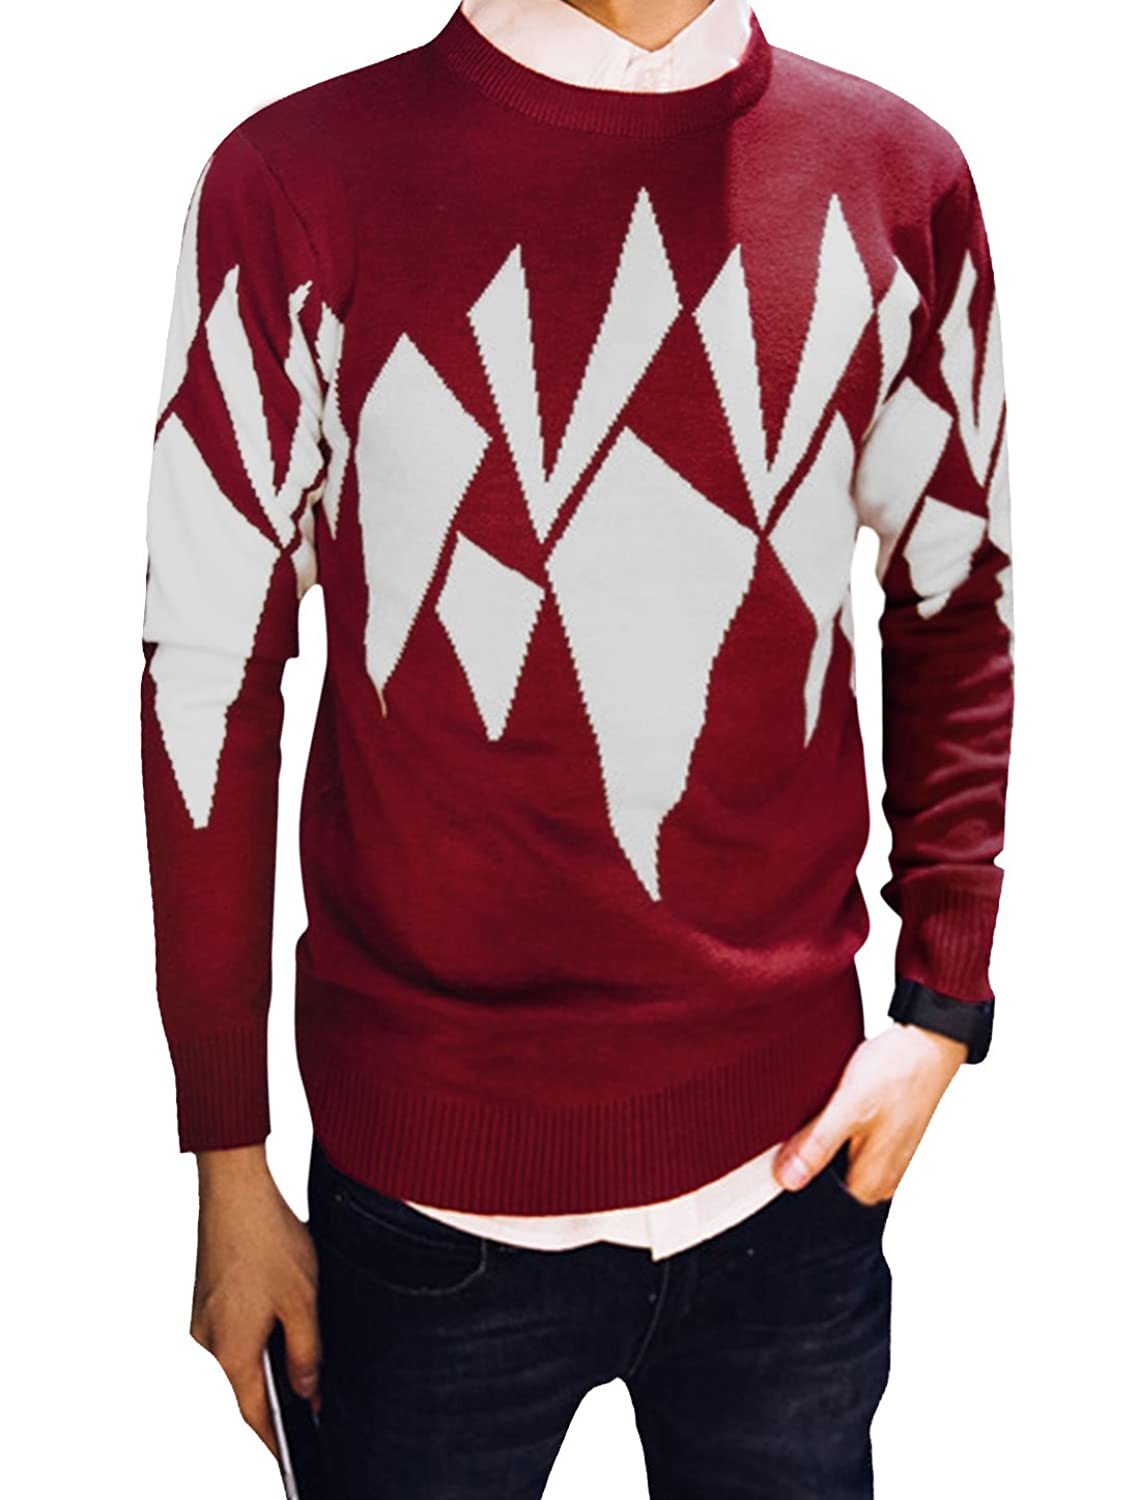 dcd1d4cde7cbcc uxcell Men Crew Neck Long Sleeve Geometric Pattern Knitting Shirt low-cost